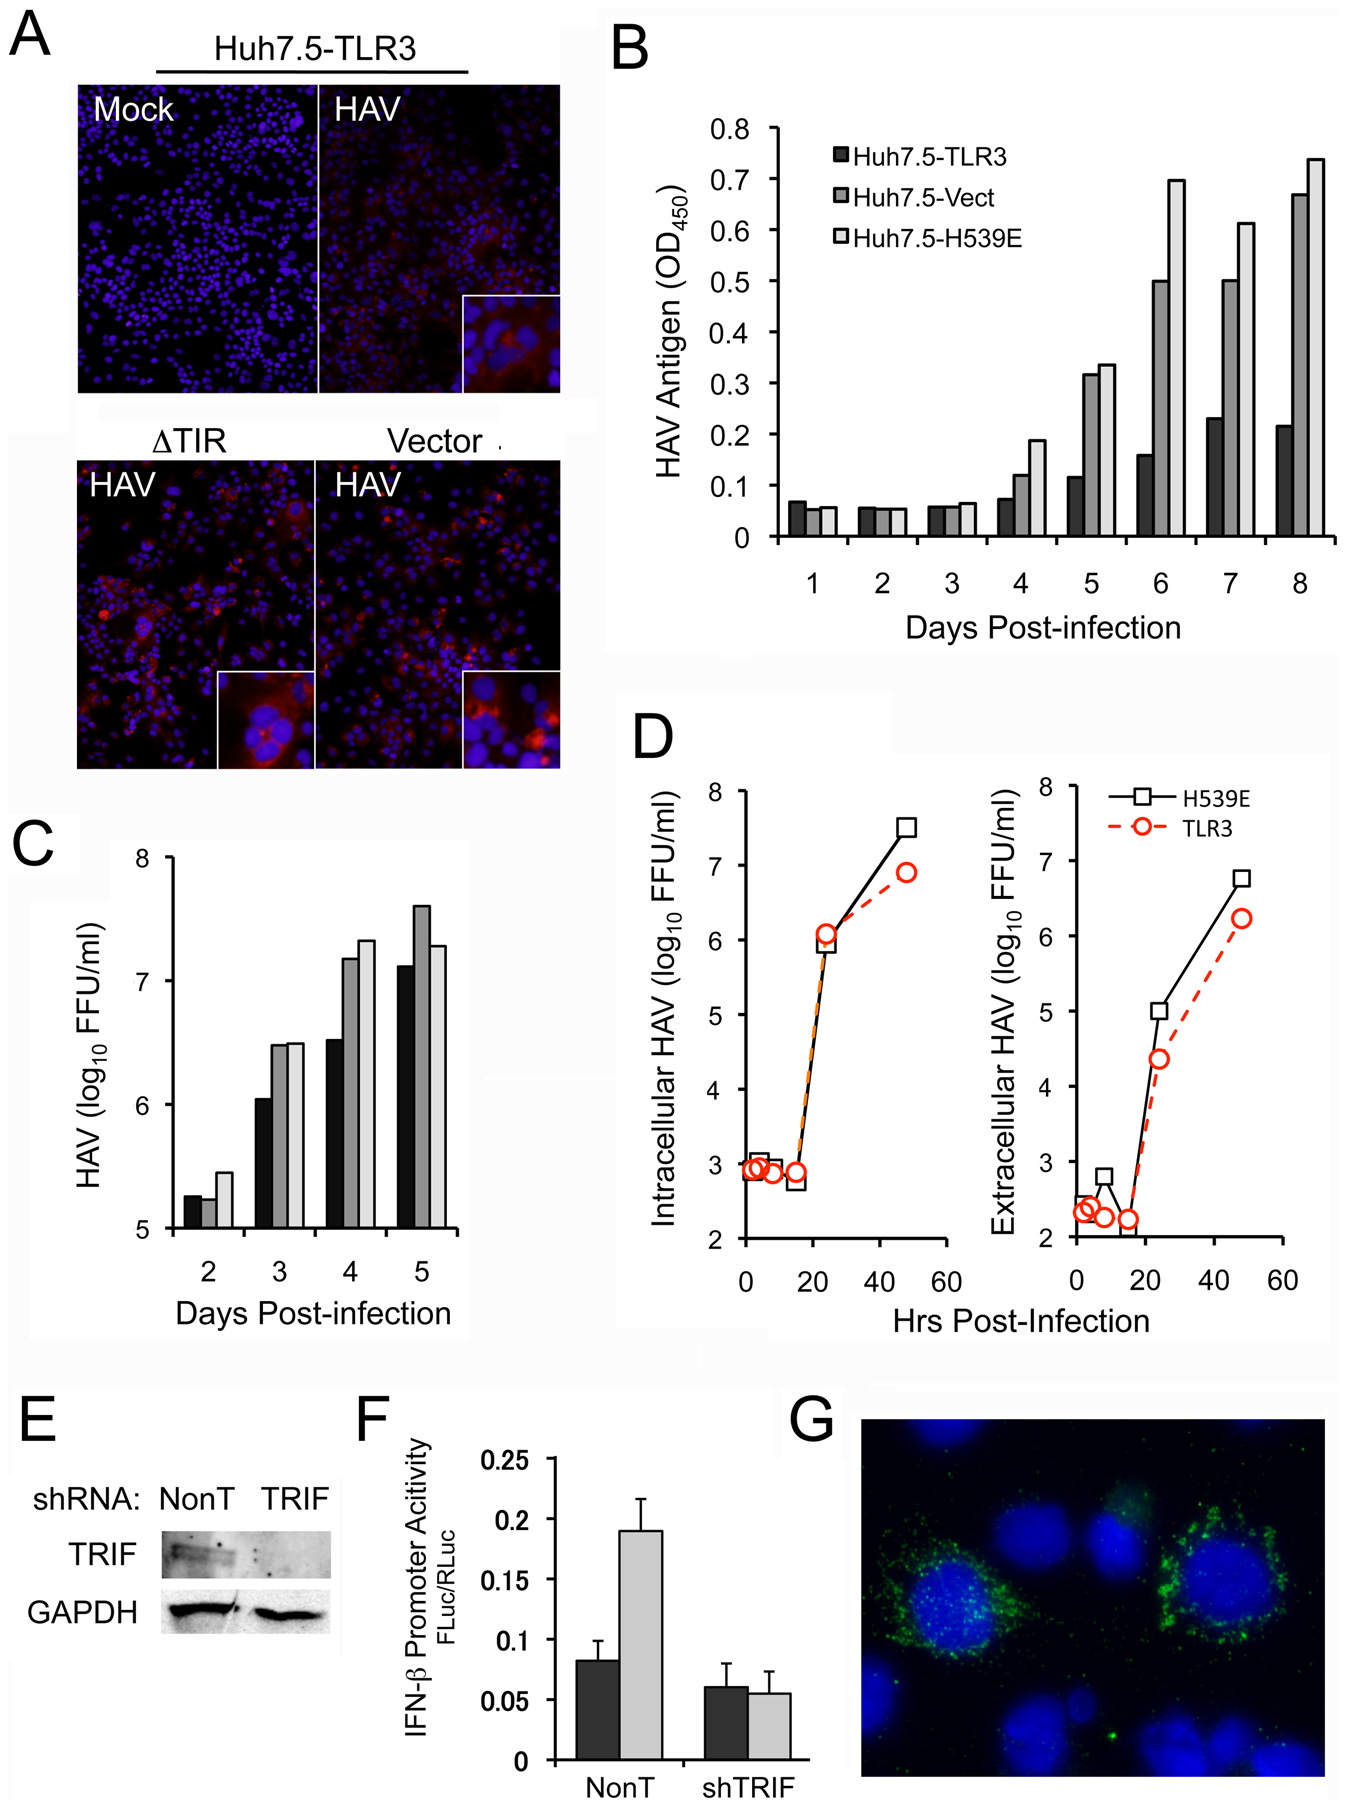 TLR signaling and TRIF regulate cellular permissiveness for HAV.